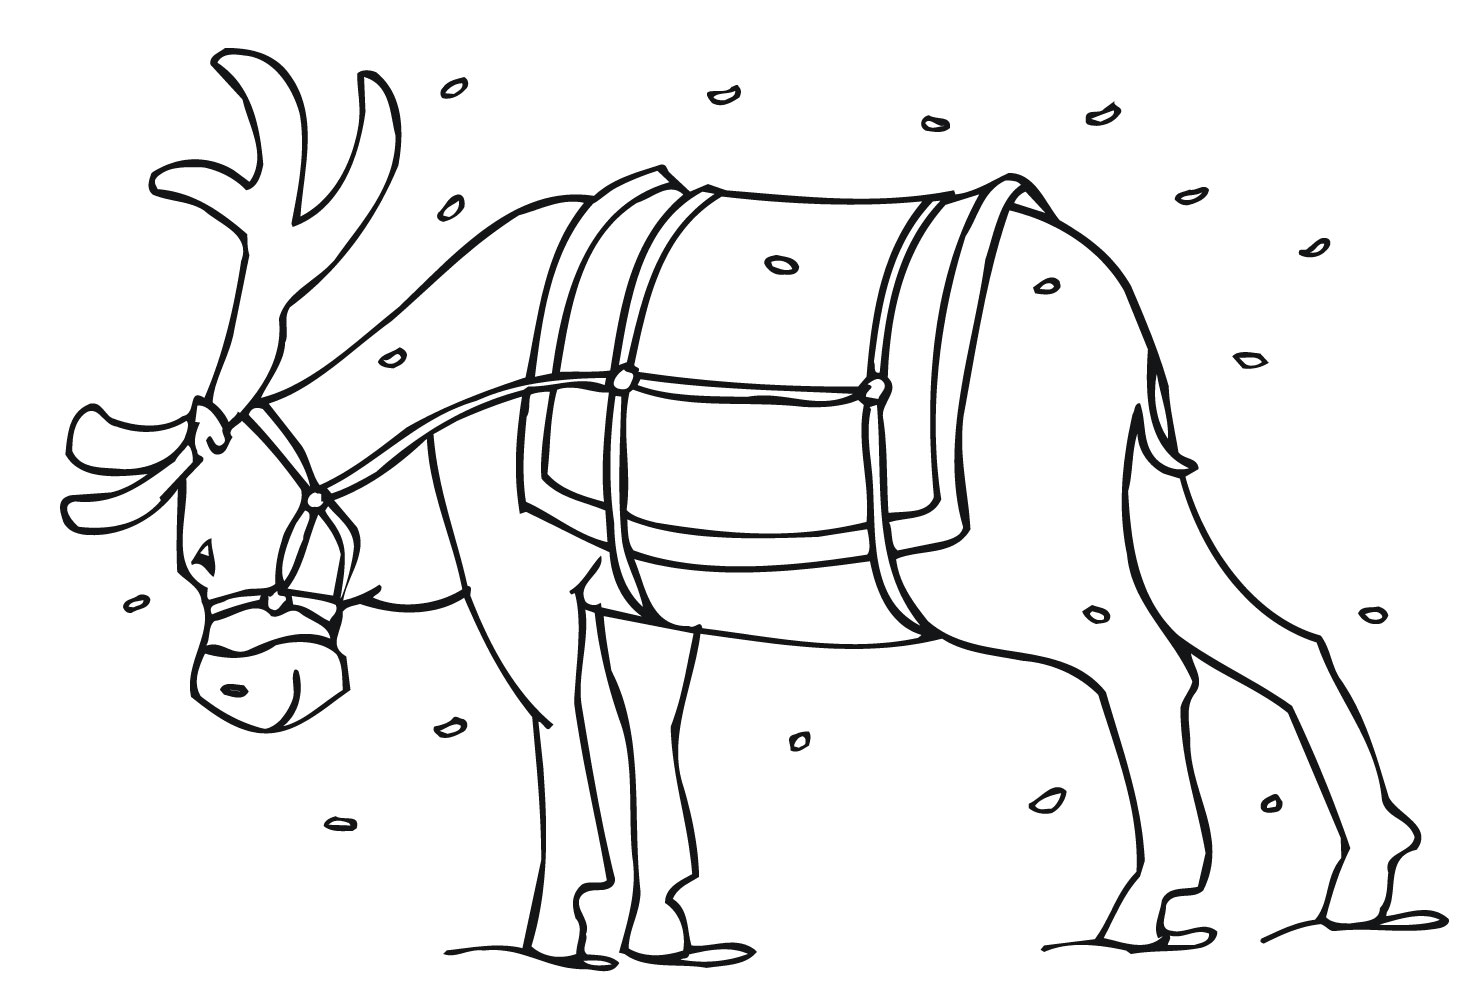 Reindeer coloring #7, Download drawings